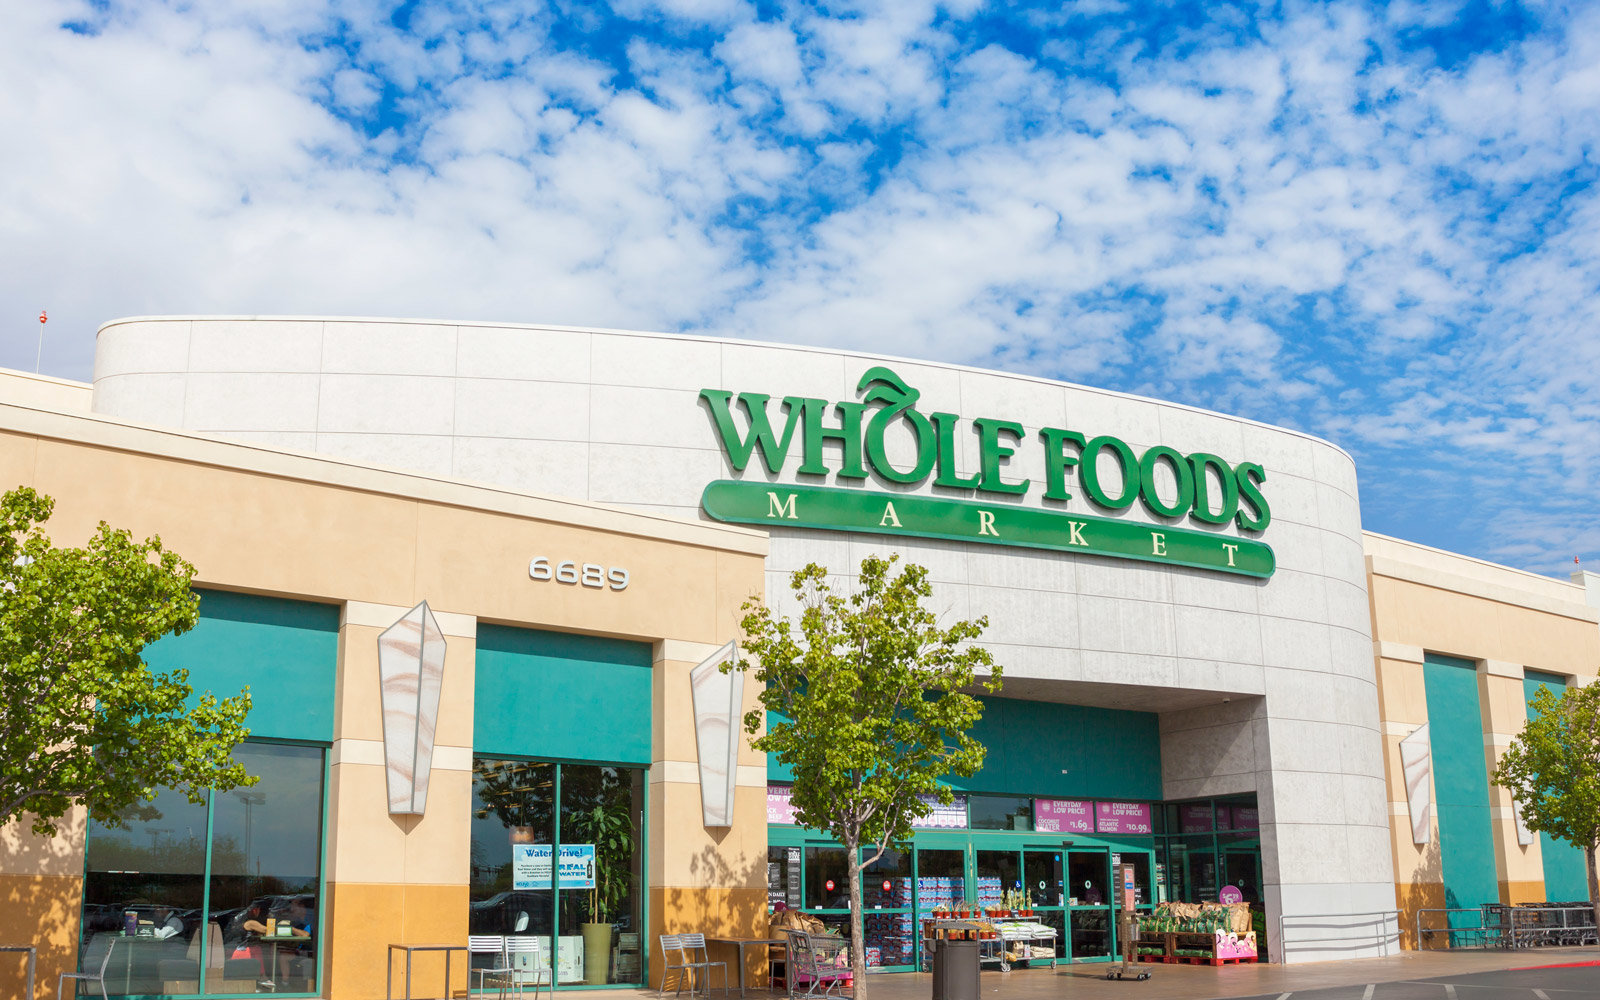 Las Vegas, USA - July 14, 2013: A photo of the Whole Foods store front in Las Vegas. Whole Foods Market is an American supermarket.